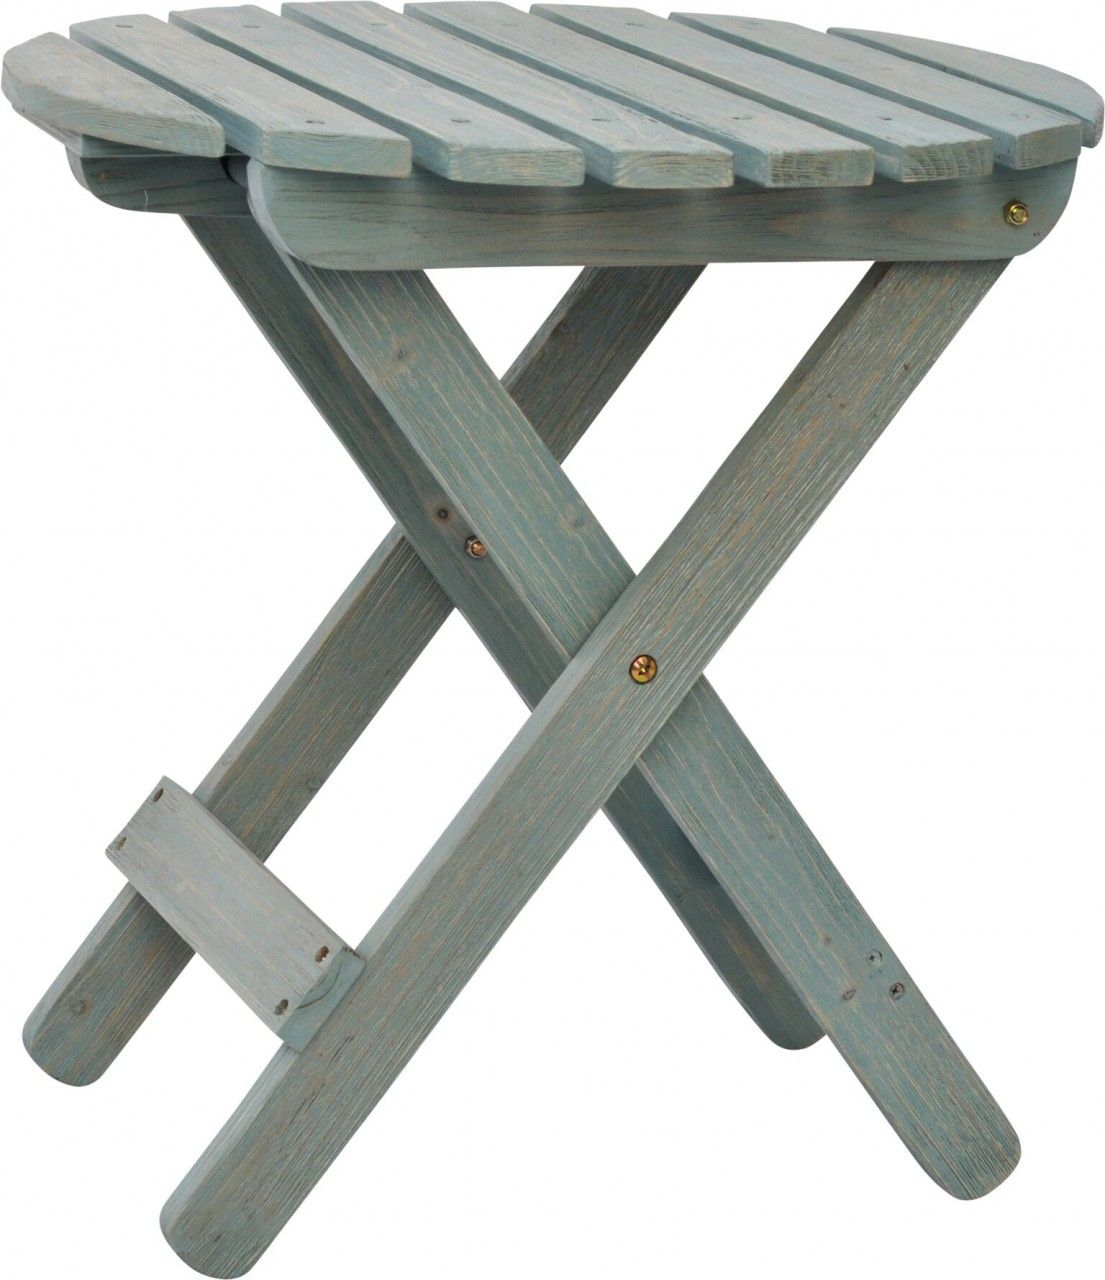 Shine Co Outdoor Round Adirondack Folding Side Table In Dutch Blue